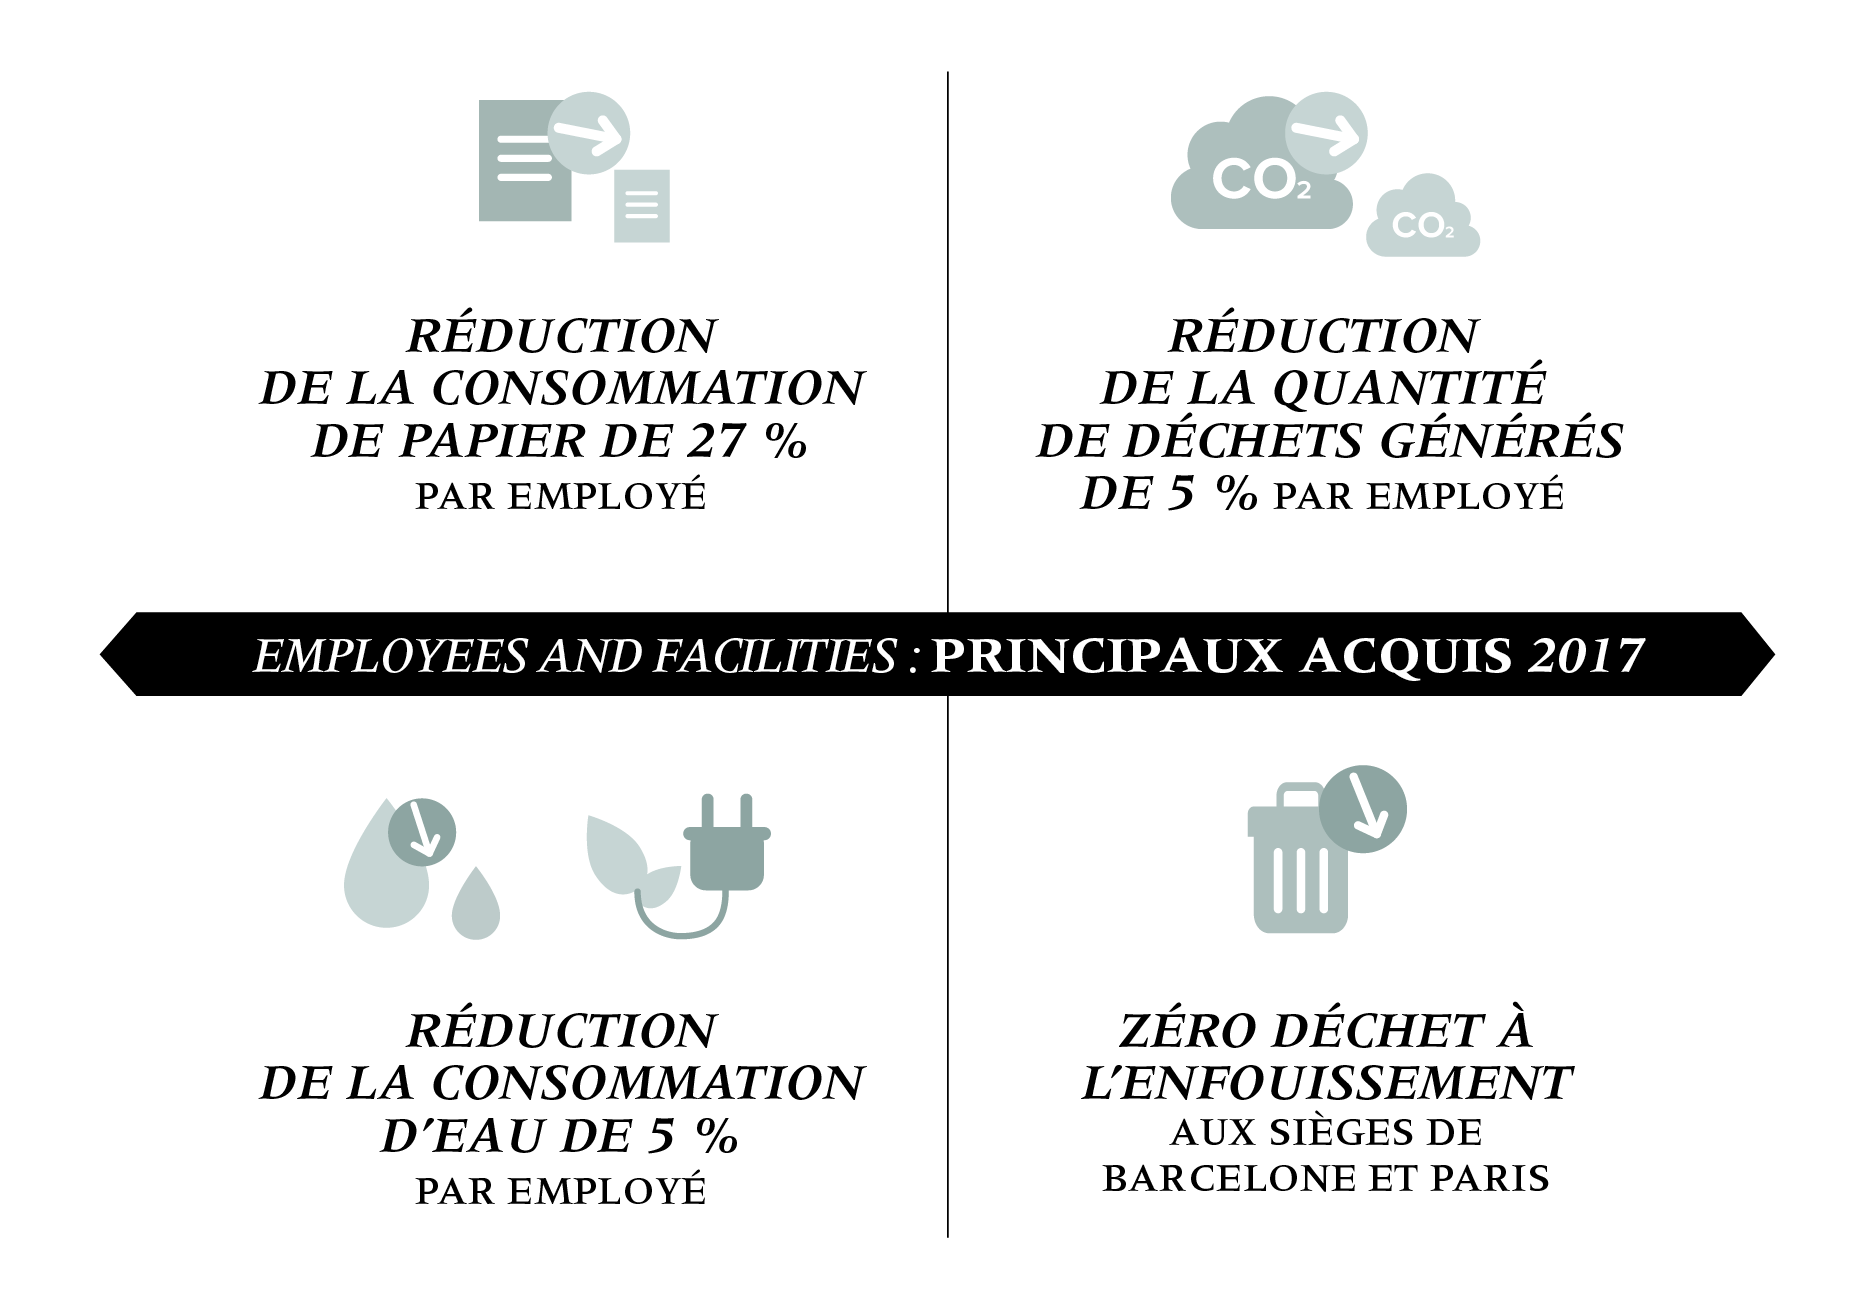 Employees and facilities : Principaux acquis 2017